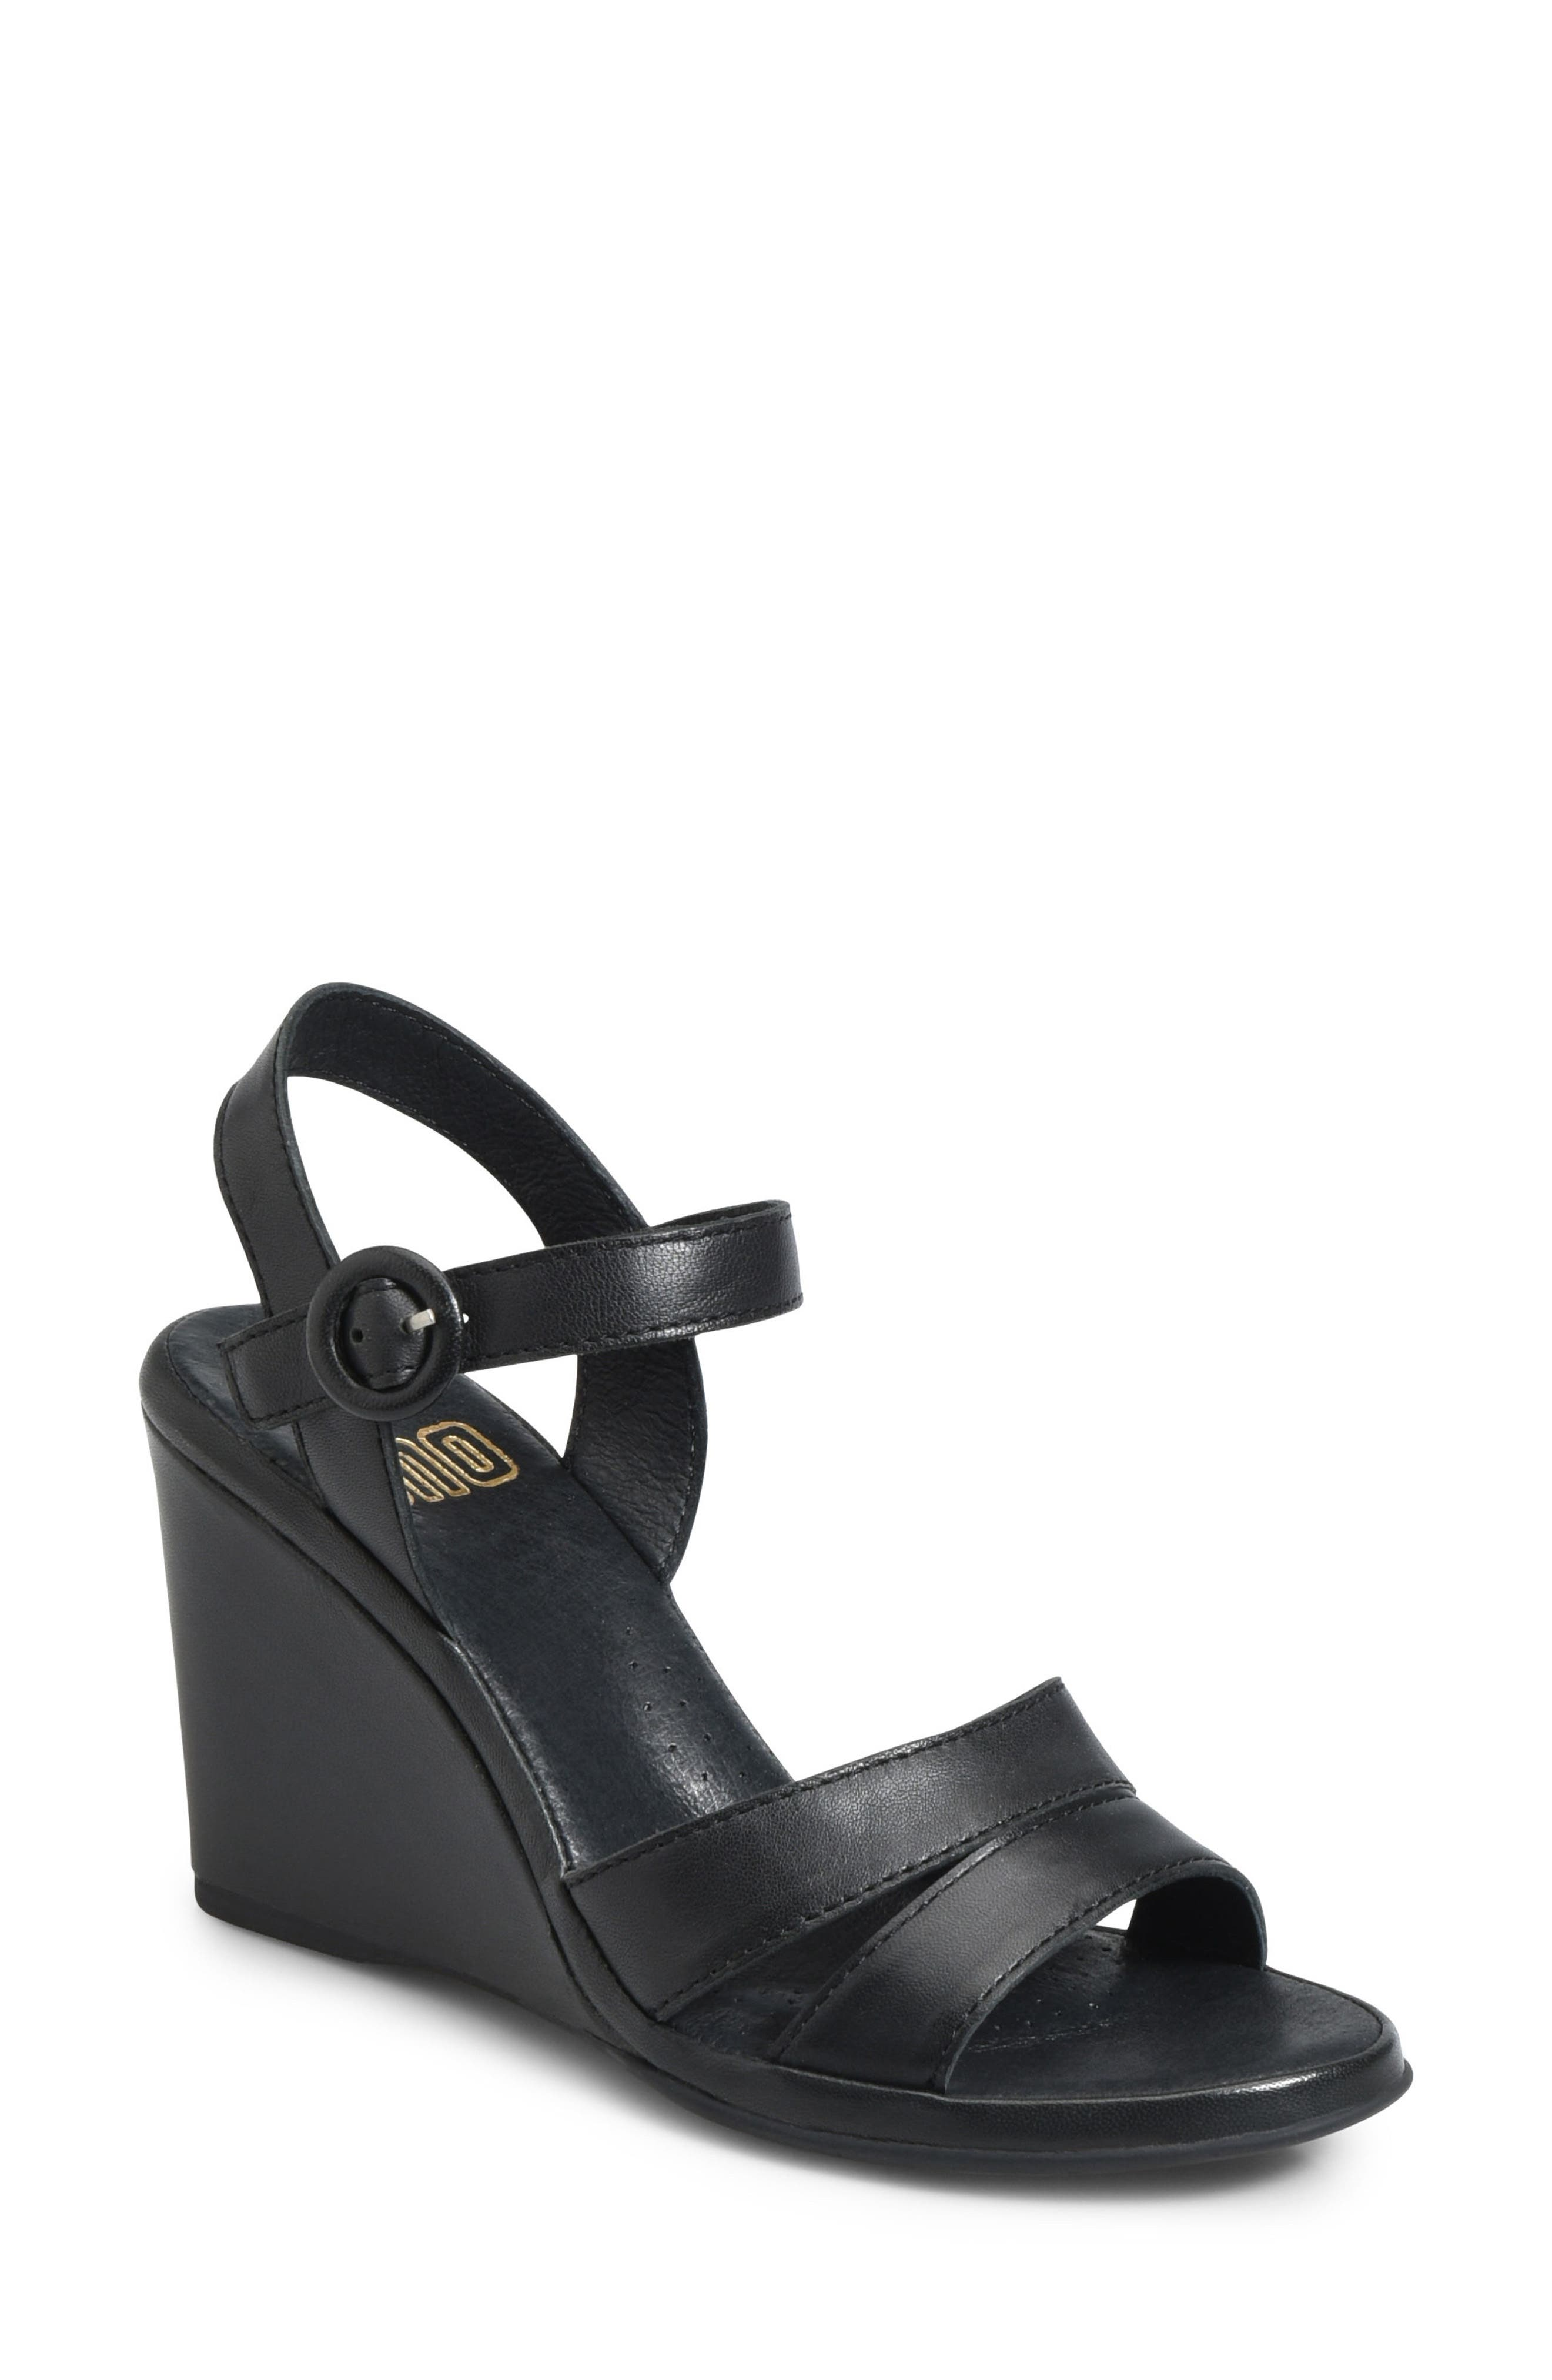 ONO, Hydro Wedge Sandal, Main thumbnail 1, color, BLACK LEATHER